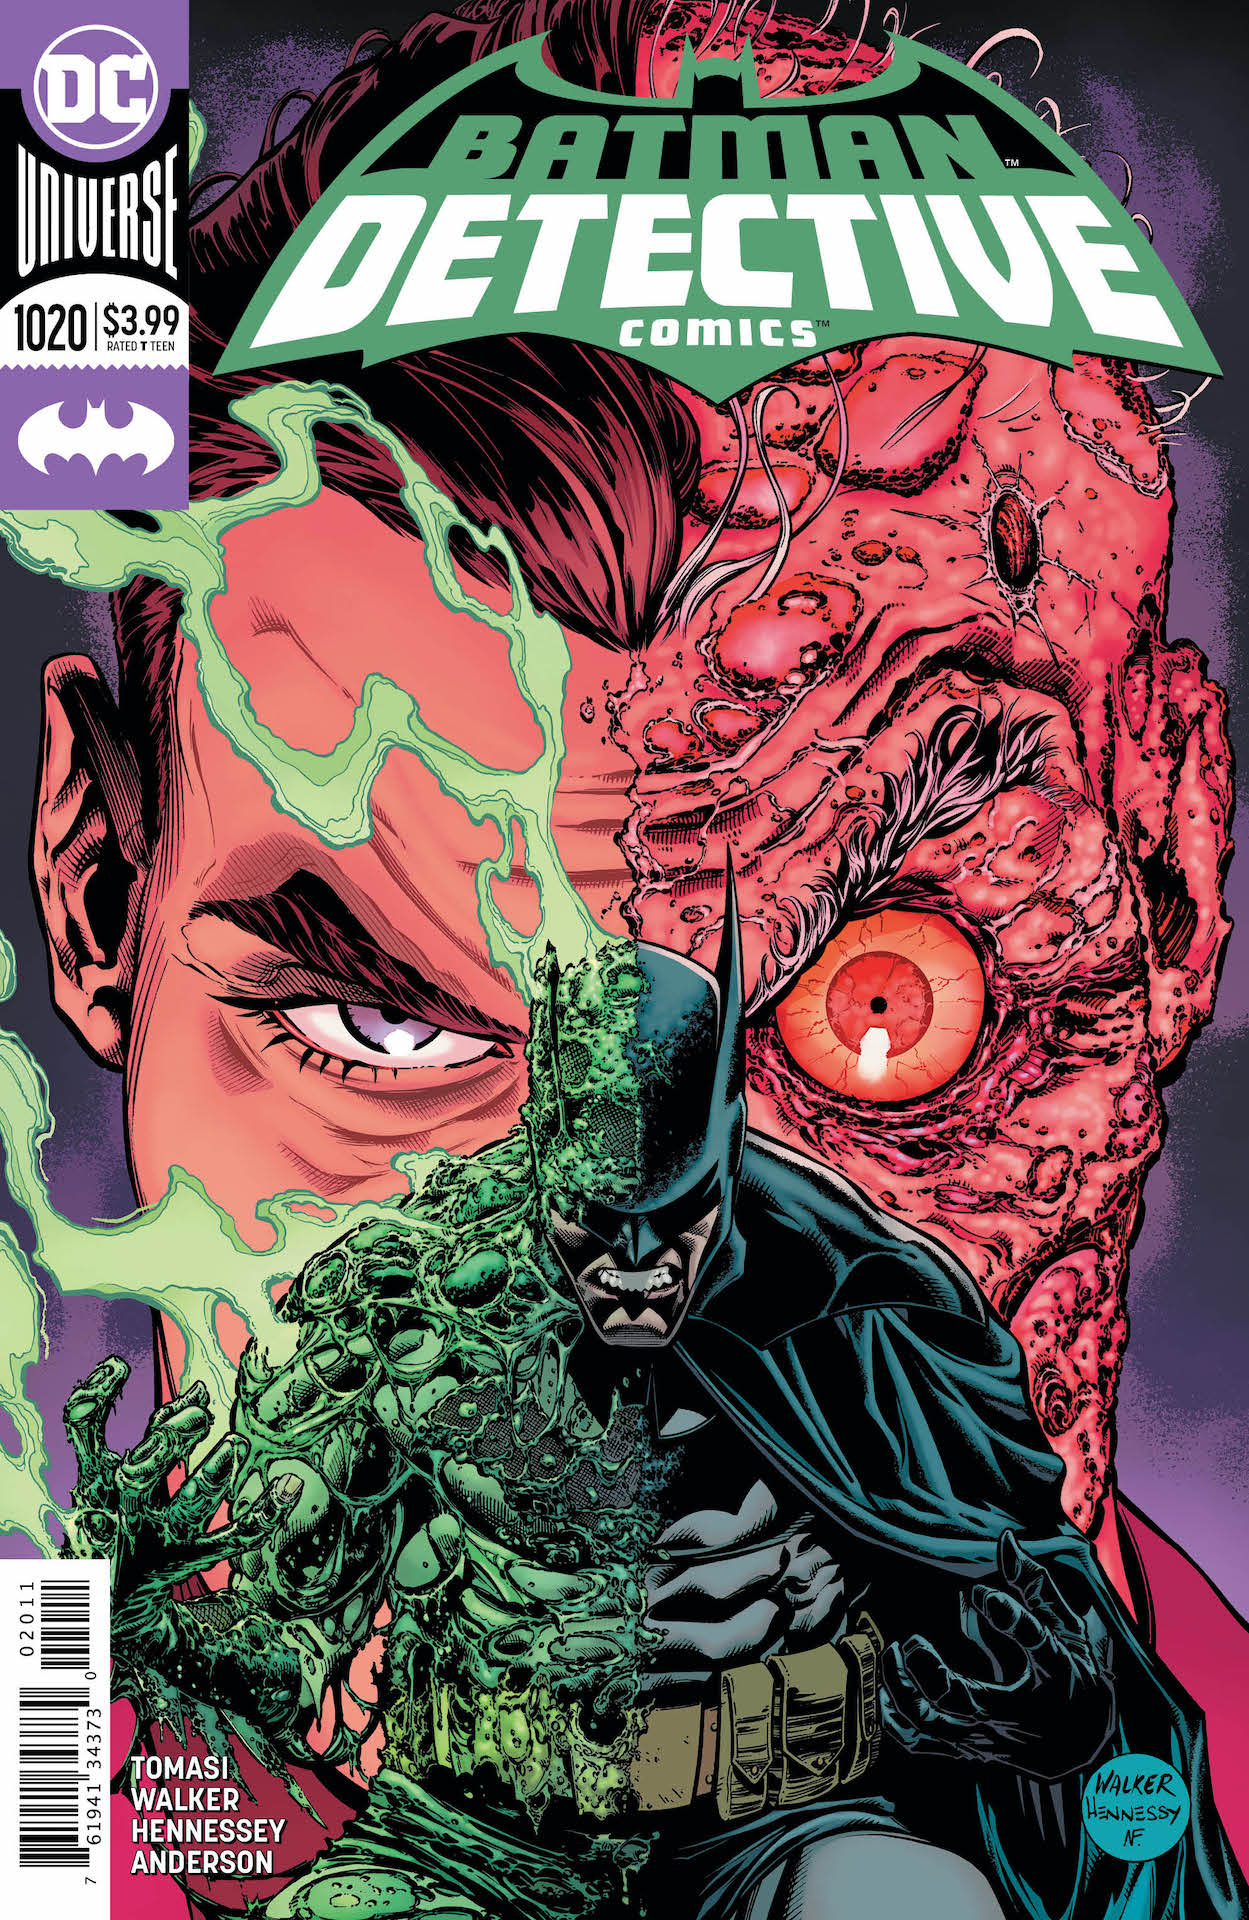 DC Preview: Detective Comics #1020